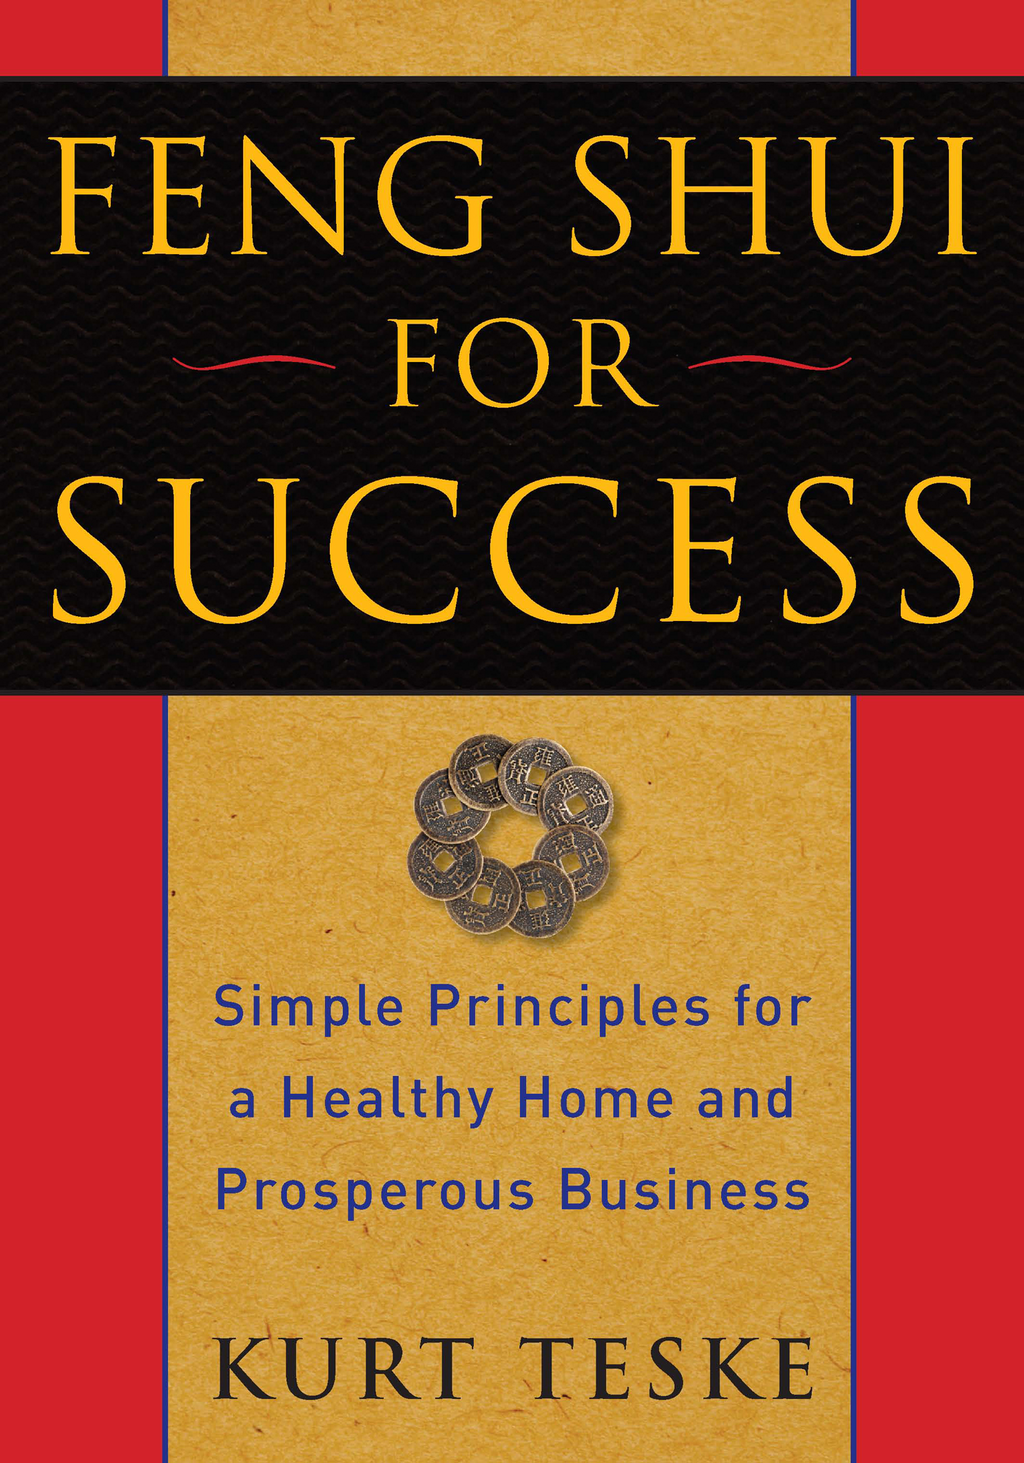 Feng Shui for Success Simple Principles for a Healthy Home and Prosperous Business